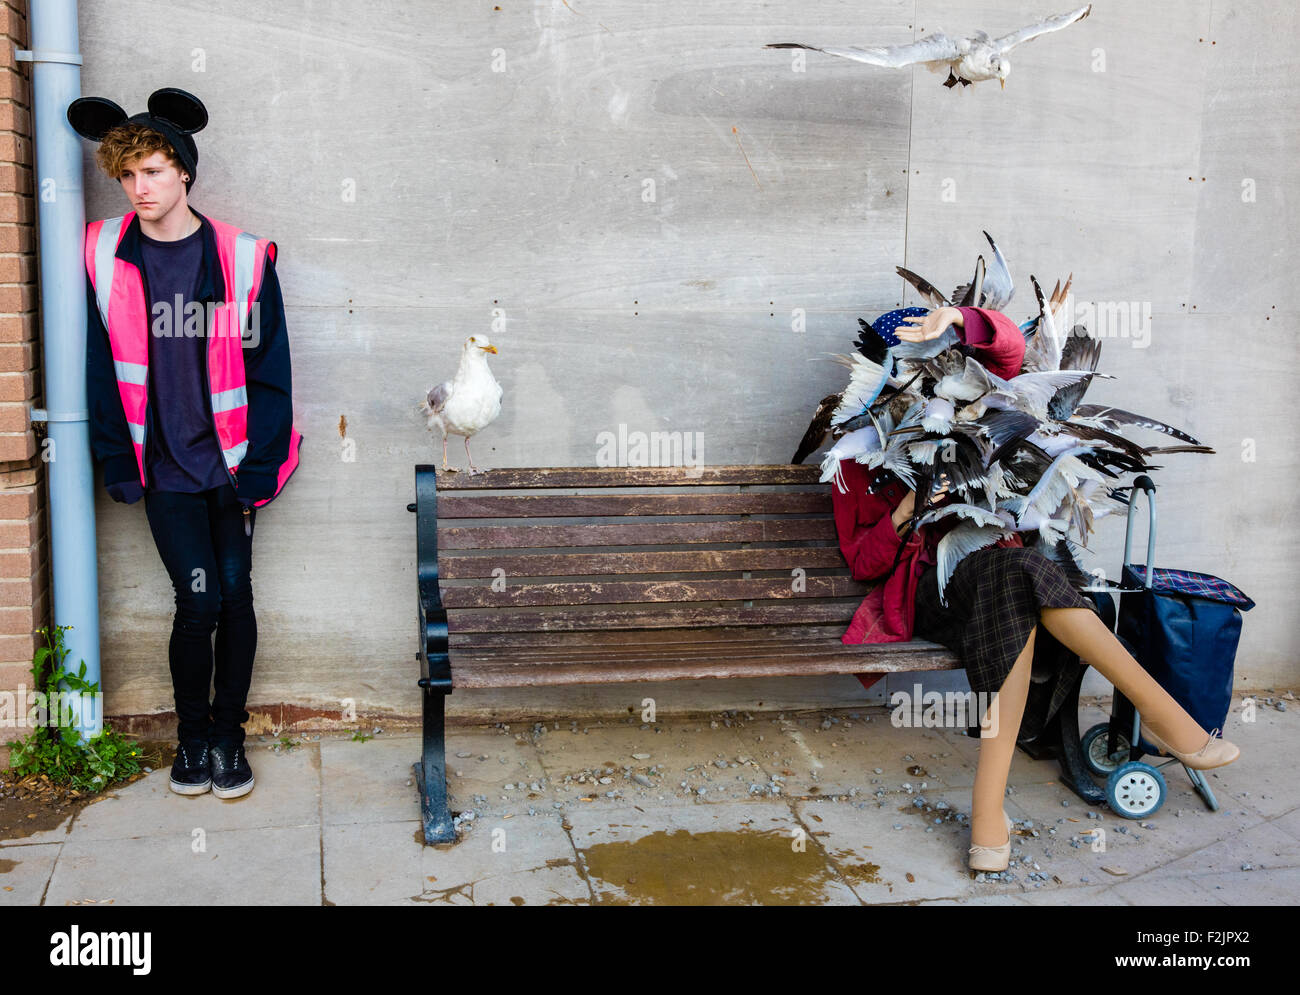 Desultory mouse eared staff next to Banksy's ' Woman Attacked by Seagulls ' sculpture at Dismaland in - Stock Image